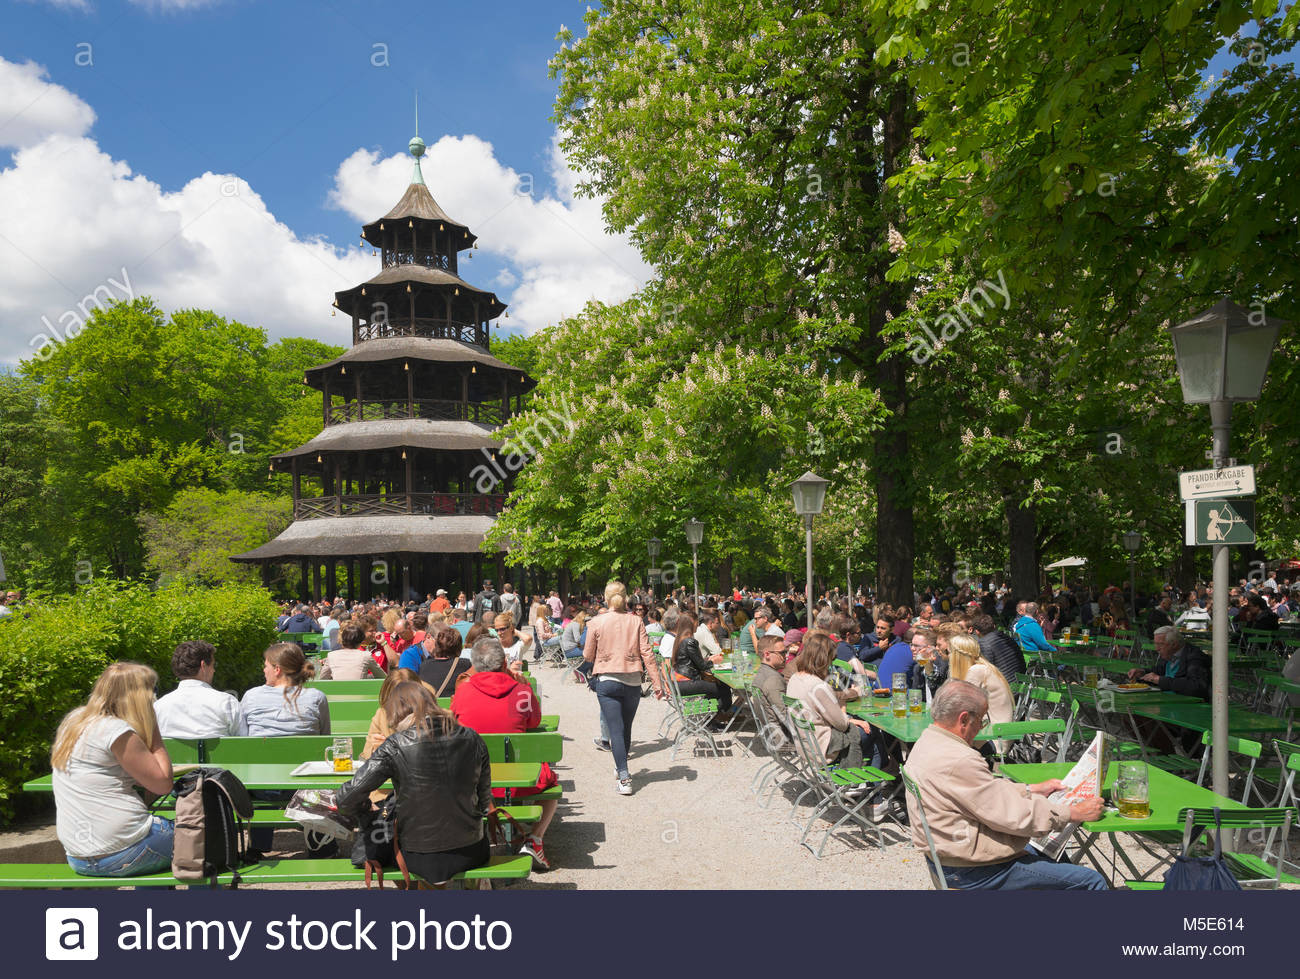 chinesischer garten stock photos chinesischer garten stock images alamy. Black Bedroom Furniture Sets. Home Design Ideas